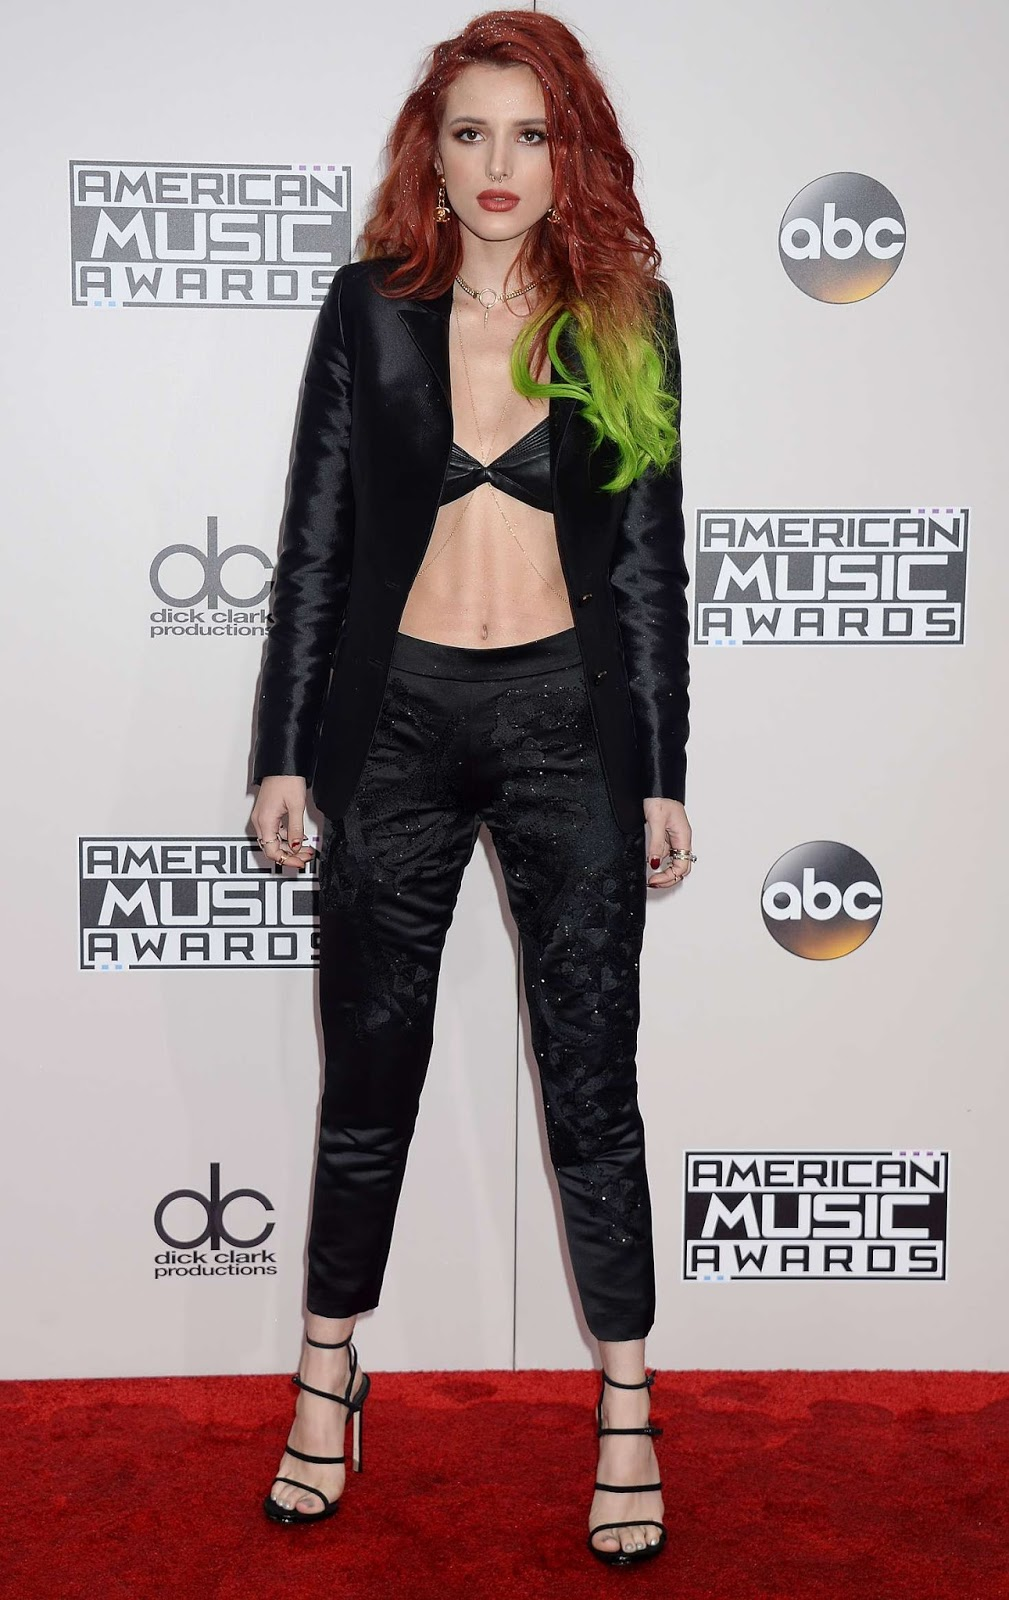 Bella Thorne flaunts leather bra at the 2016 American Music Awards in Los Angeles